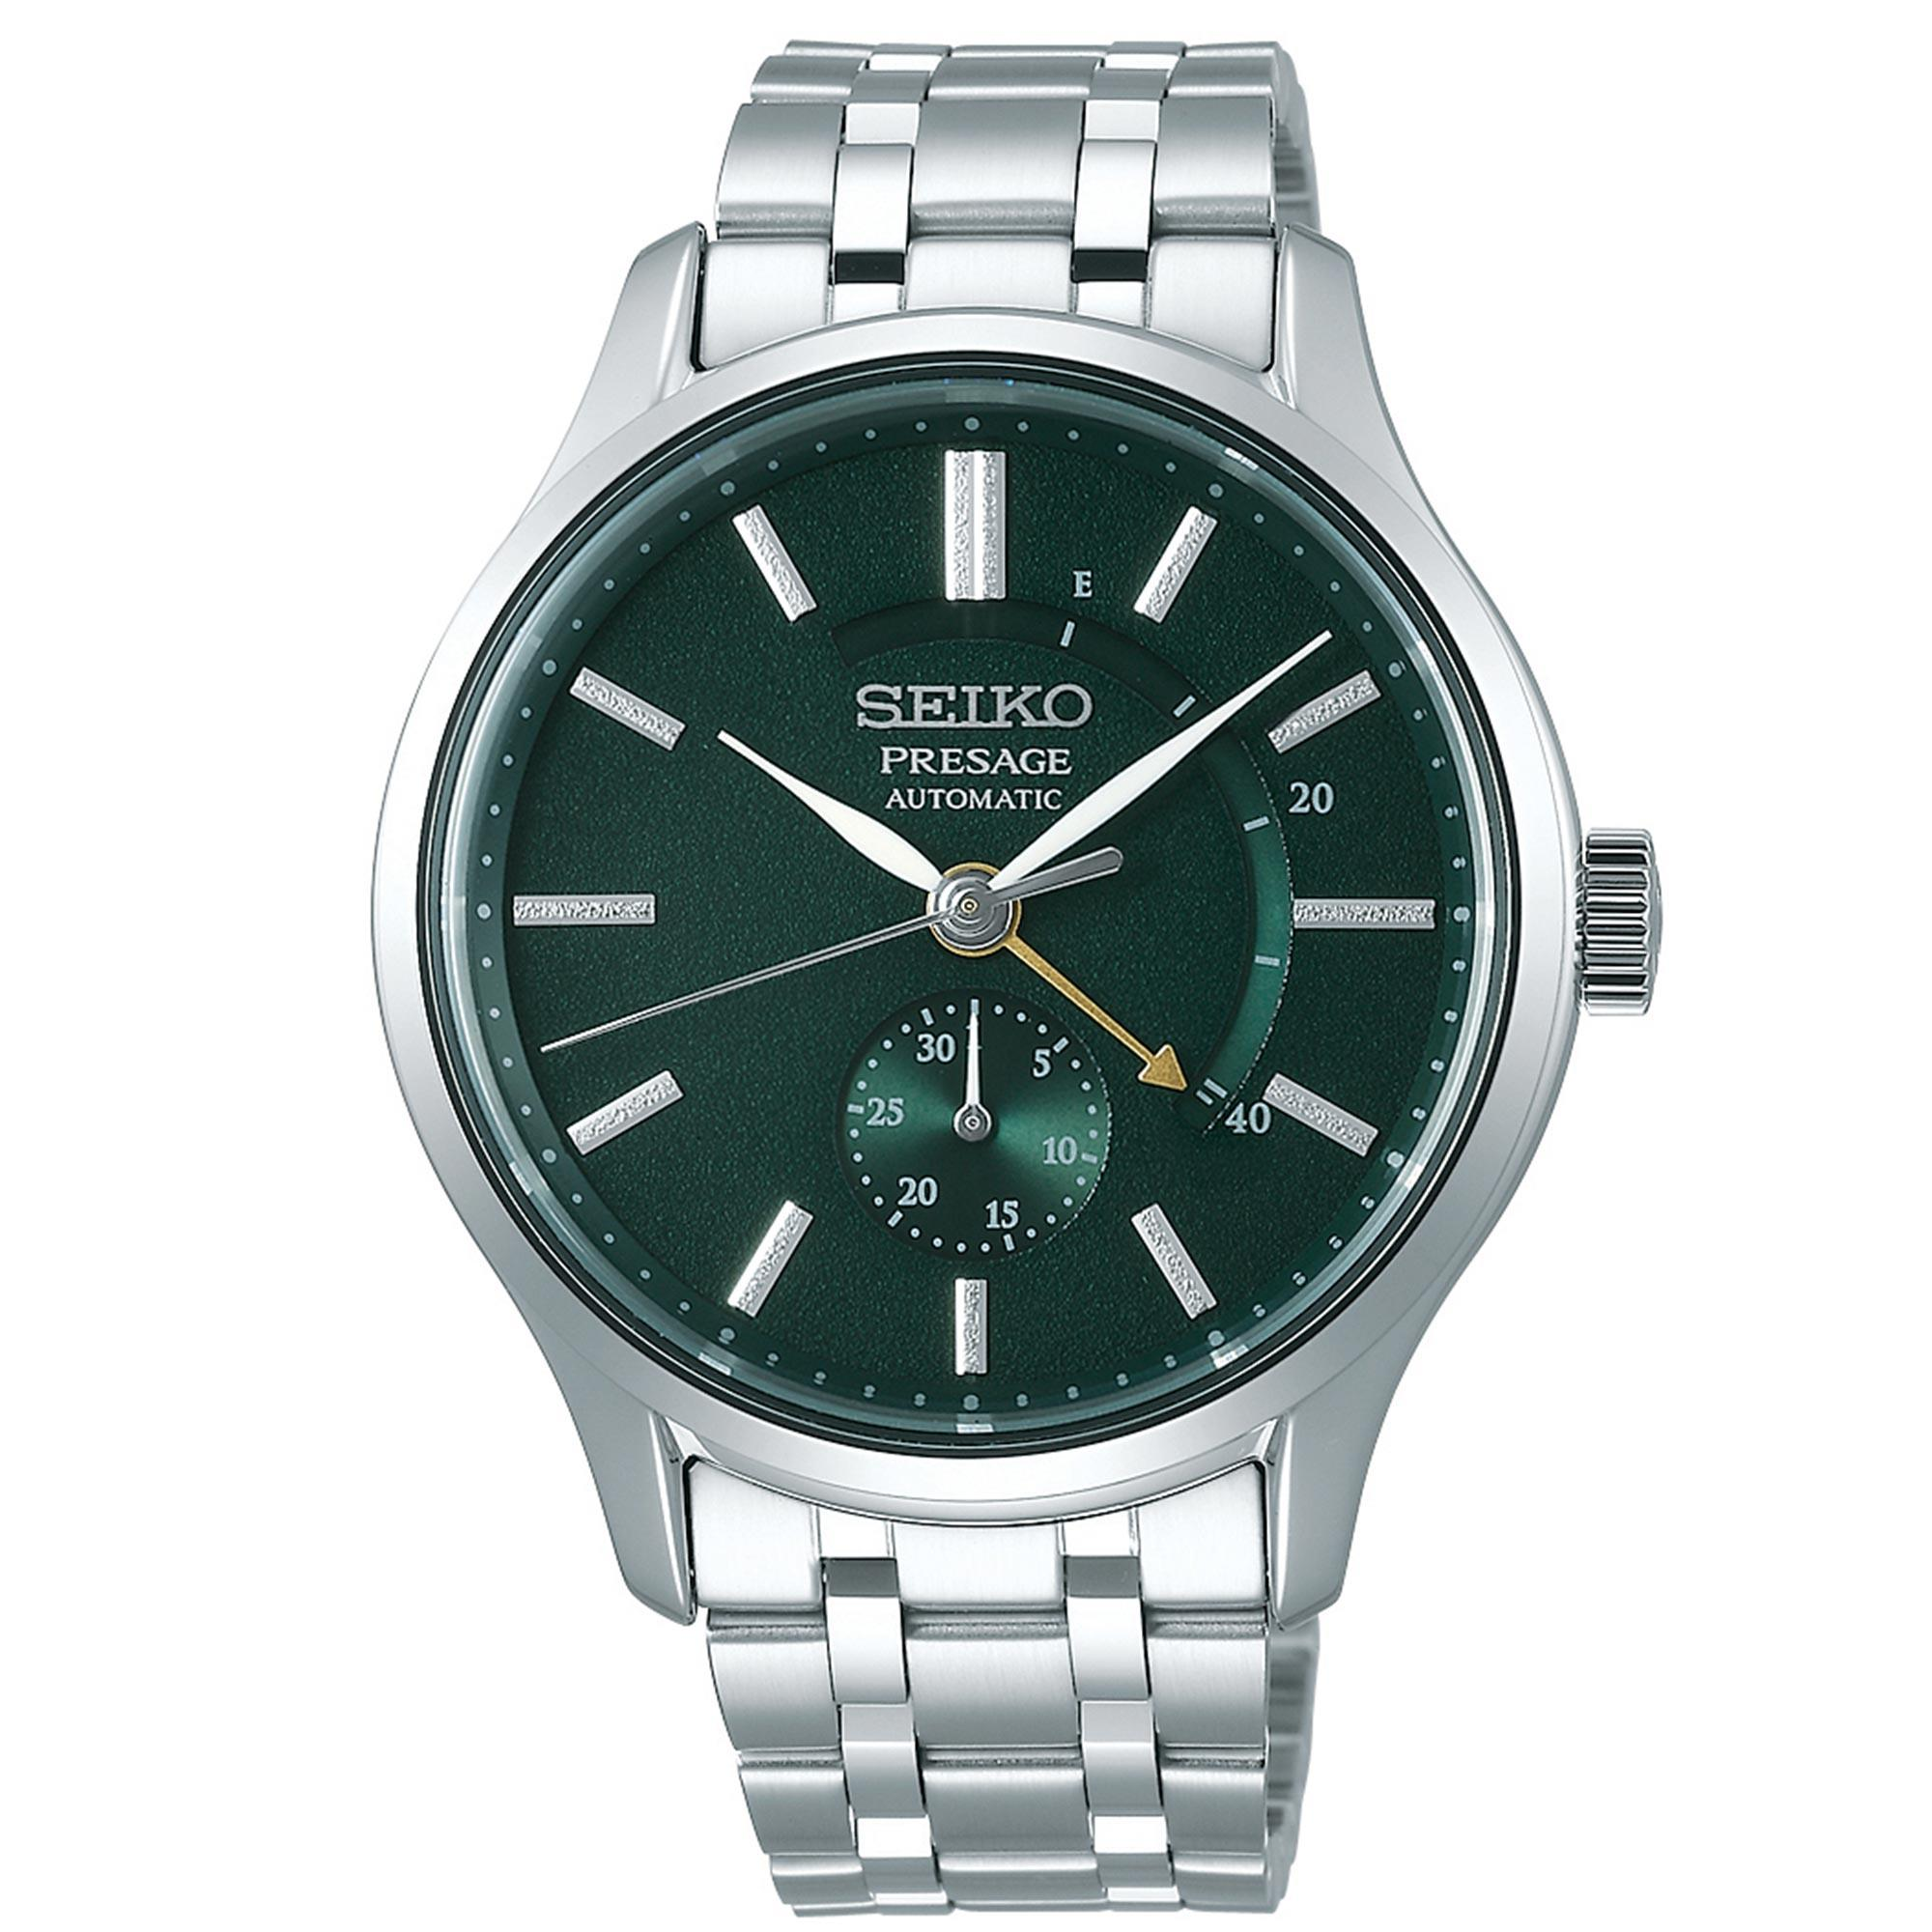 Seiko Presage Zen Garden Silver Stainless Steel Green Dial Automatic Men's Watch SSA397J1 42mmThis Seiko Presage Zen Garden Silver Stainless Steel Green Dial Automatic Men's Watch SSA397J1 42mm allows you to step into serenity. This timepiece is inspired by beautiful Japanese gardens, with a dial in a calming white delicately pressed pattern. The marbled pattern is also seen on the index surfaces, reminiscent of stepping stones across soothing green moss. A golden hand in the shape of an arrow is used to indicate the power reserve of the timepiece, which can reach a maximum of 41 hours. At the 6 o'clock position is a subdial which is used to display the date of the month. Protecting the dial is a silver stainless case as well as sapphire crystal glass. Finally, a silver stainless steel bracelet can be fastened using a folding clasp.This watch has a water resistance of 30 metres, making it suitable for light splashes.For all you Seiko enthusiasts, this premium timepiece has been made and produced in Japan, indicated by the suffix 'J'. Seiko watches made in Japan are notoriously hard to obtain outside of Japan due to the highest quality of craftmanship and astonishing features that come in each individual timepiece. We have a range of Japanese watches here at Watchnation but in limited quantities, so if you are looking to add to your collection then this is the perfect place for you.Key Features:Presage FamilyZen Garden SeriesSilver Stainless Steel CaseSilver Stainless Steel BraceletGreen DialAutomatic MovementPower ReserveMarble Pattern Dial30m Water ResistantSapphire Crystal GlassExhibition Case BackFolding Clasp4R57 Caliber Engine29 Jewels41 Hour Power ReserveDate WindowThe Brand: SeikoSeiko's 135-year history has been marked by a ceaseless determination to innovate in every aspect of the watchmaker's art. By embracing this mantra, Seiko has been responsible for a string of industry-leading advances in the technology of time, such as the world's first quartz watch, the world's first TV watch, and the Seiko Kinetic, the first watch ever to generate its own electricity from the movement of the wearer. Seiko are unique in that they manufacture every aspect of every watch in-house, with this ruthless pursuit of perfection even including growing their own quartz crystals and sapphires.